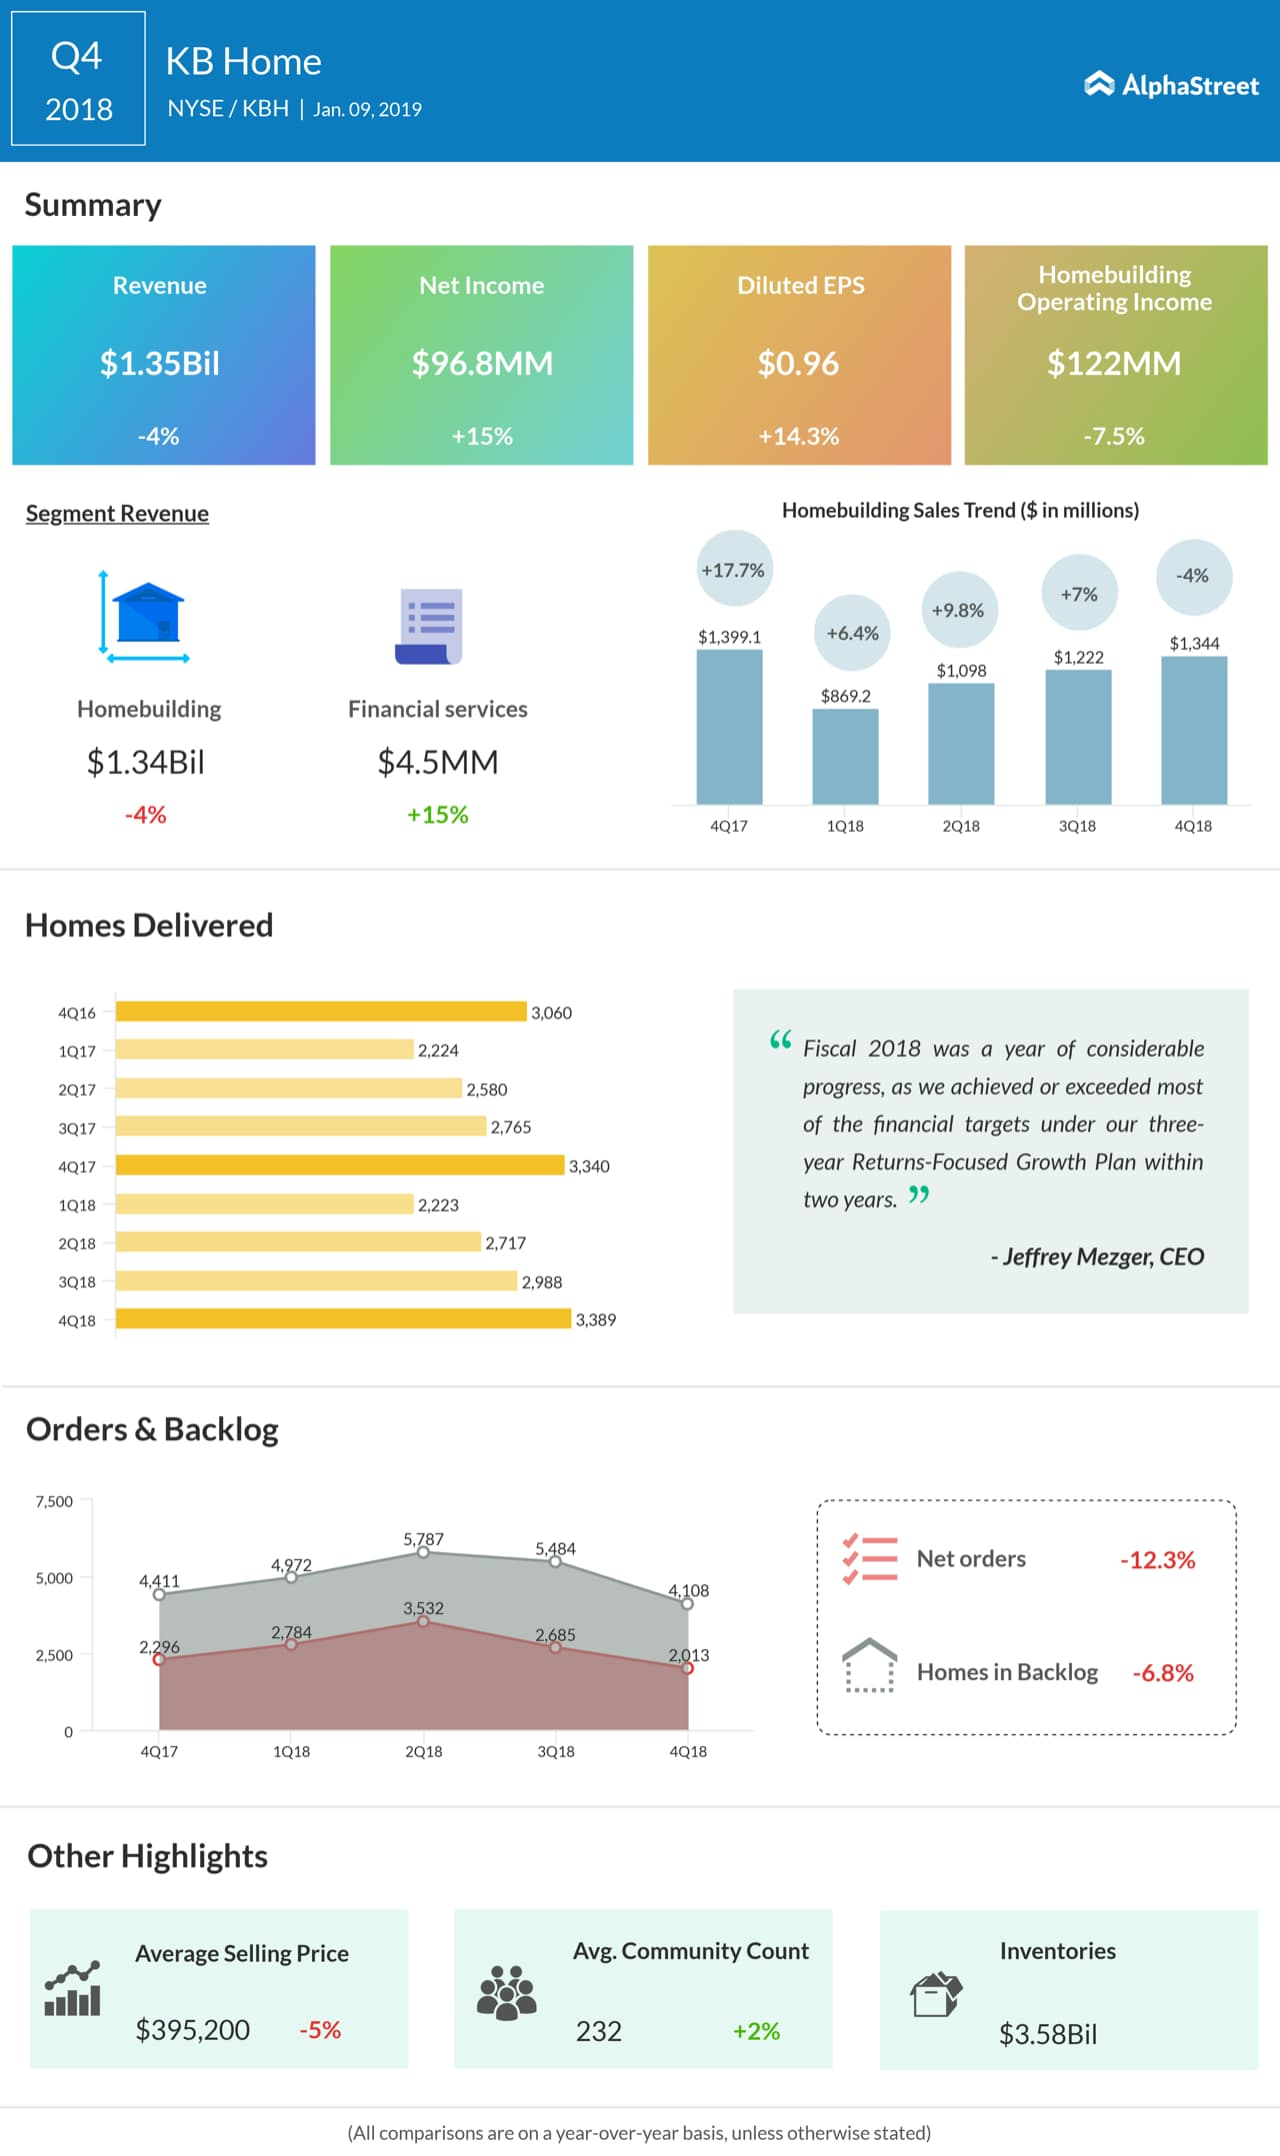 KB Home Q4 2018 Earnings Infographic